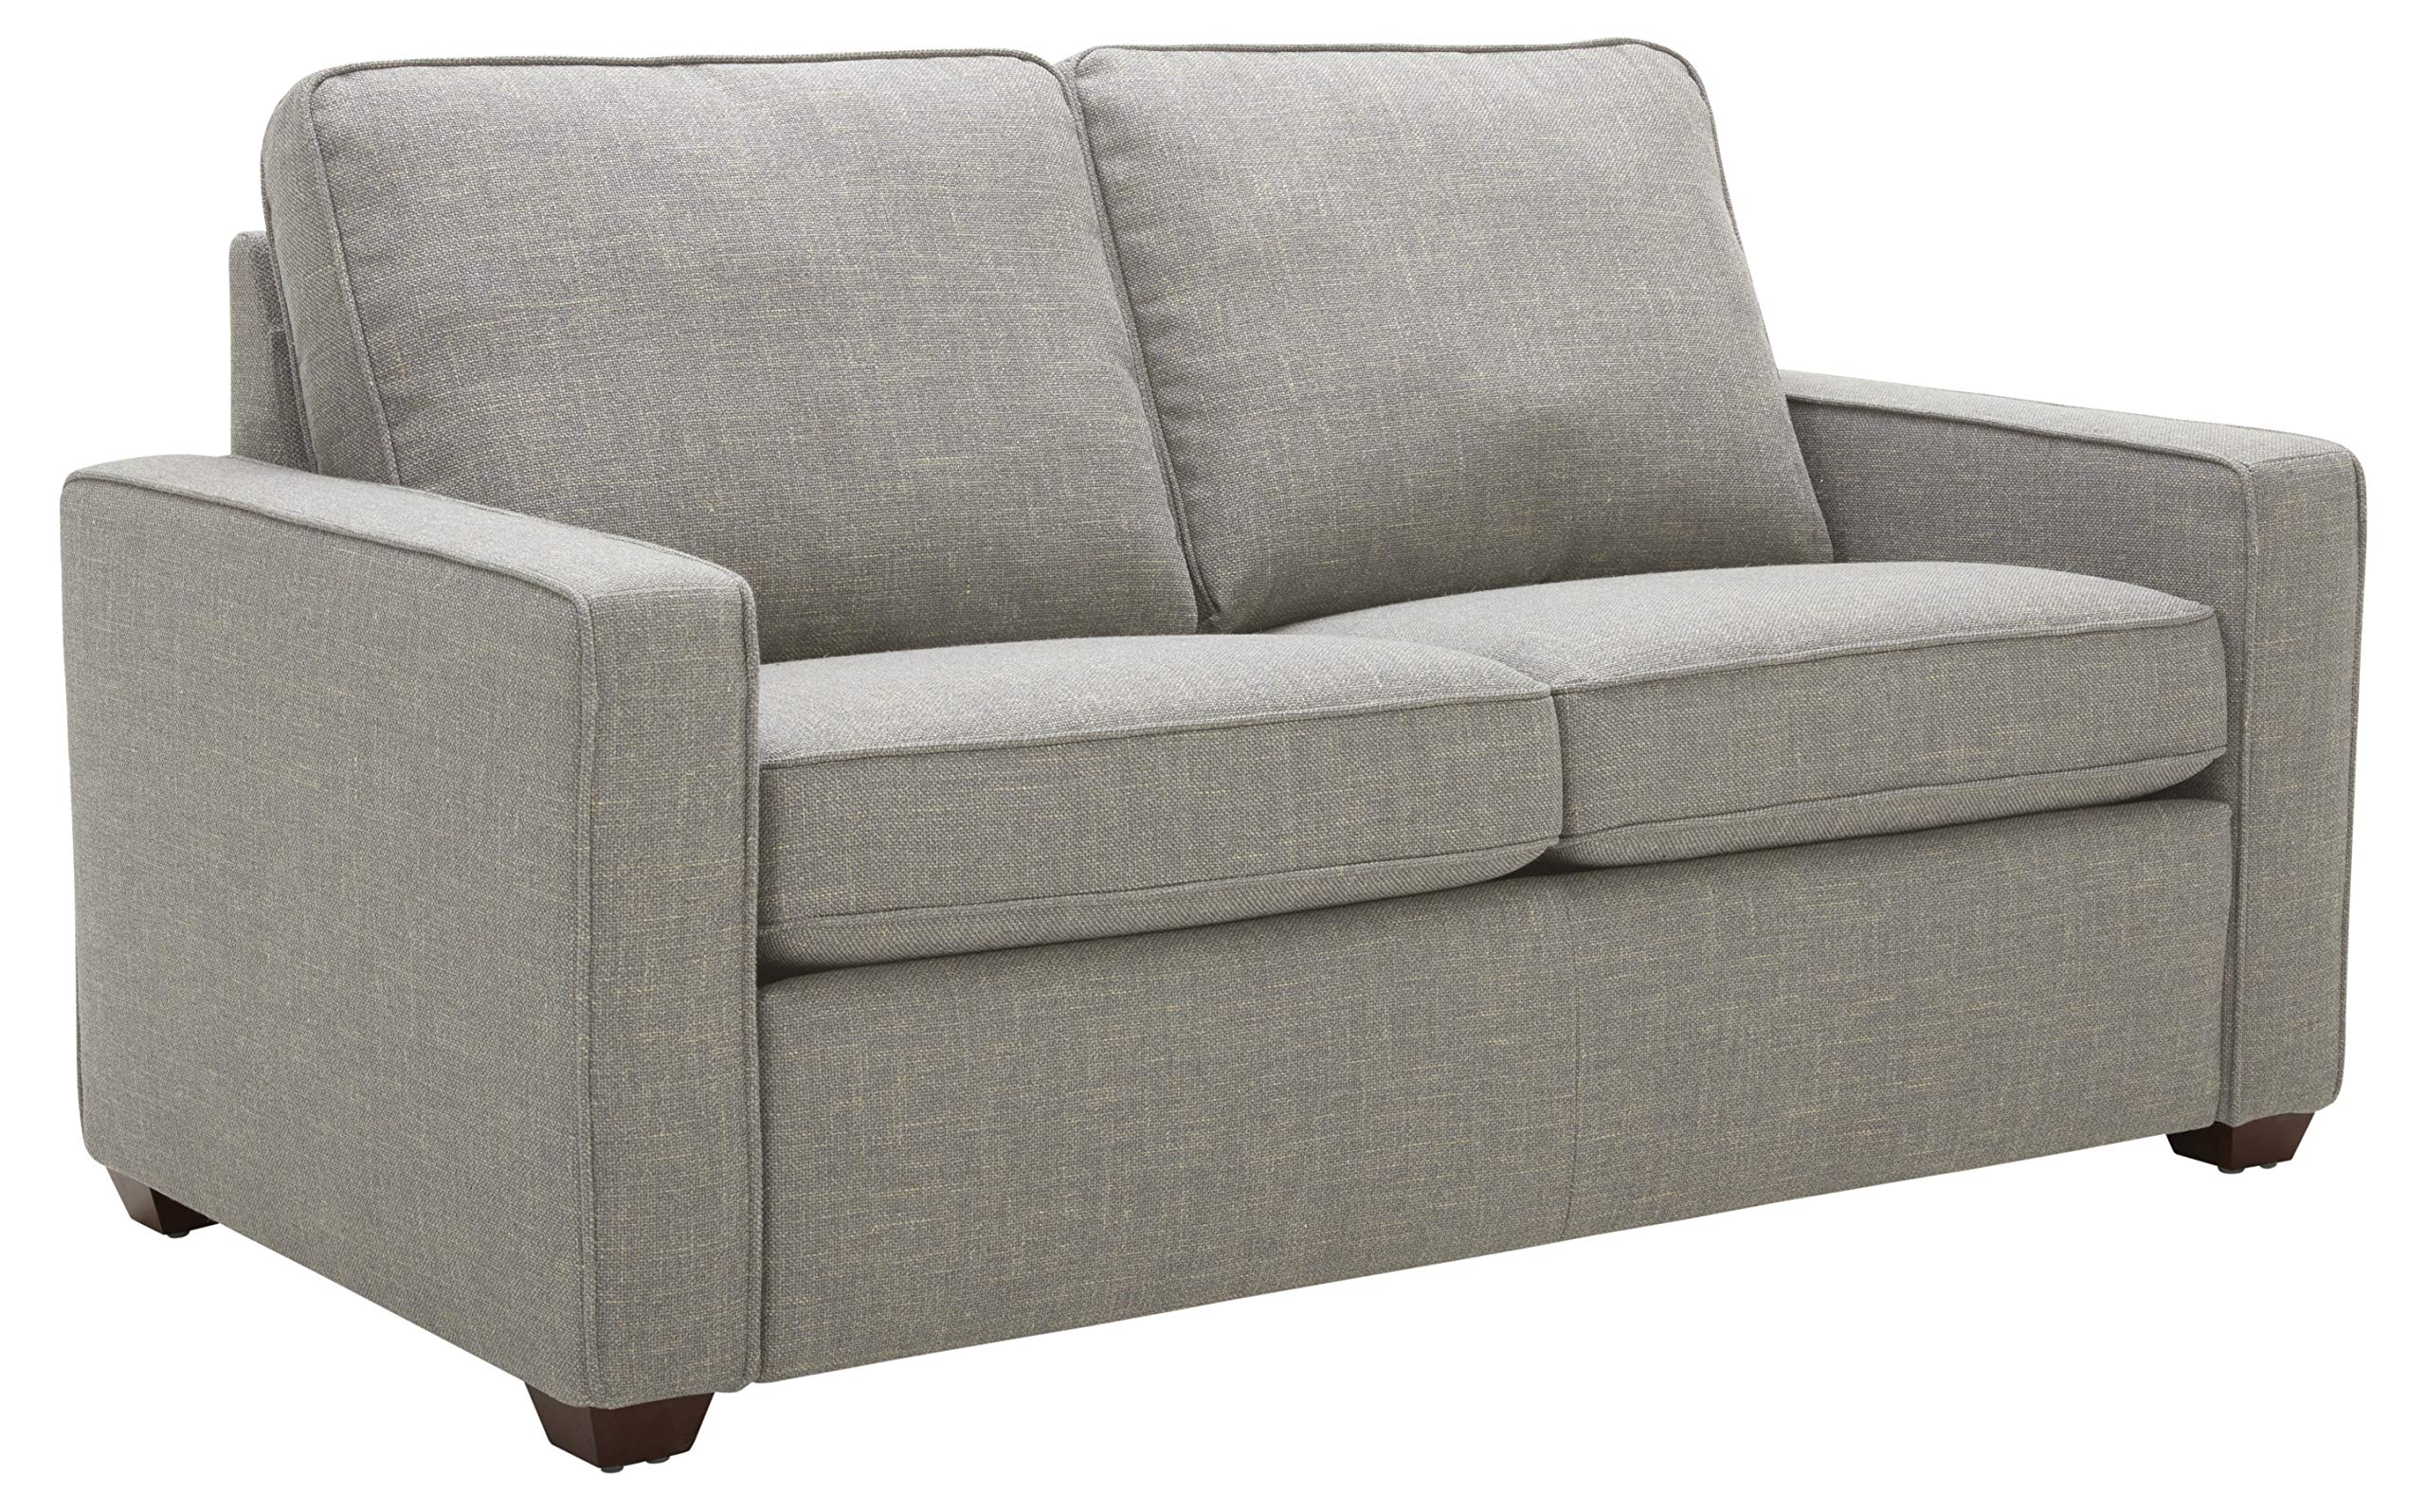 Rivet Andrews Contemporary Love Seat with Removable Cushions, 67''W, Light Grey by Rivet